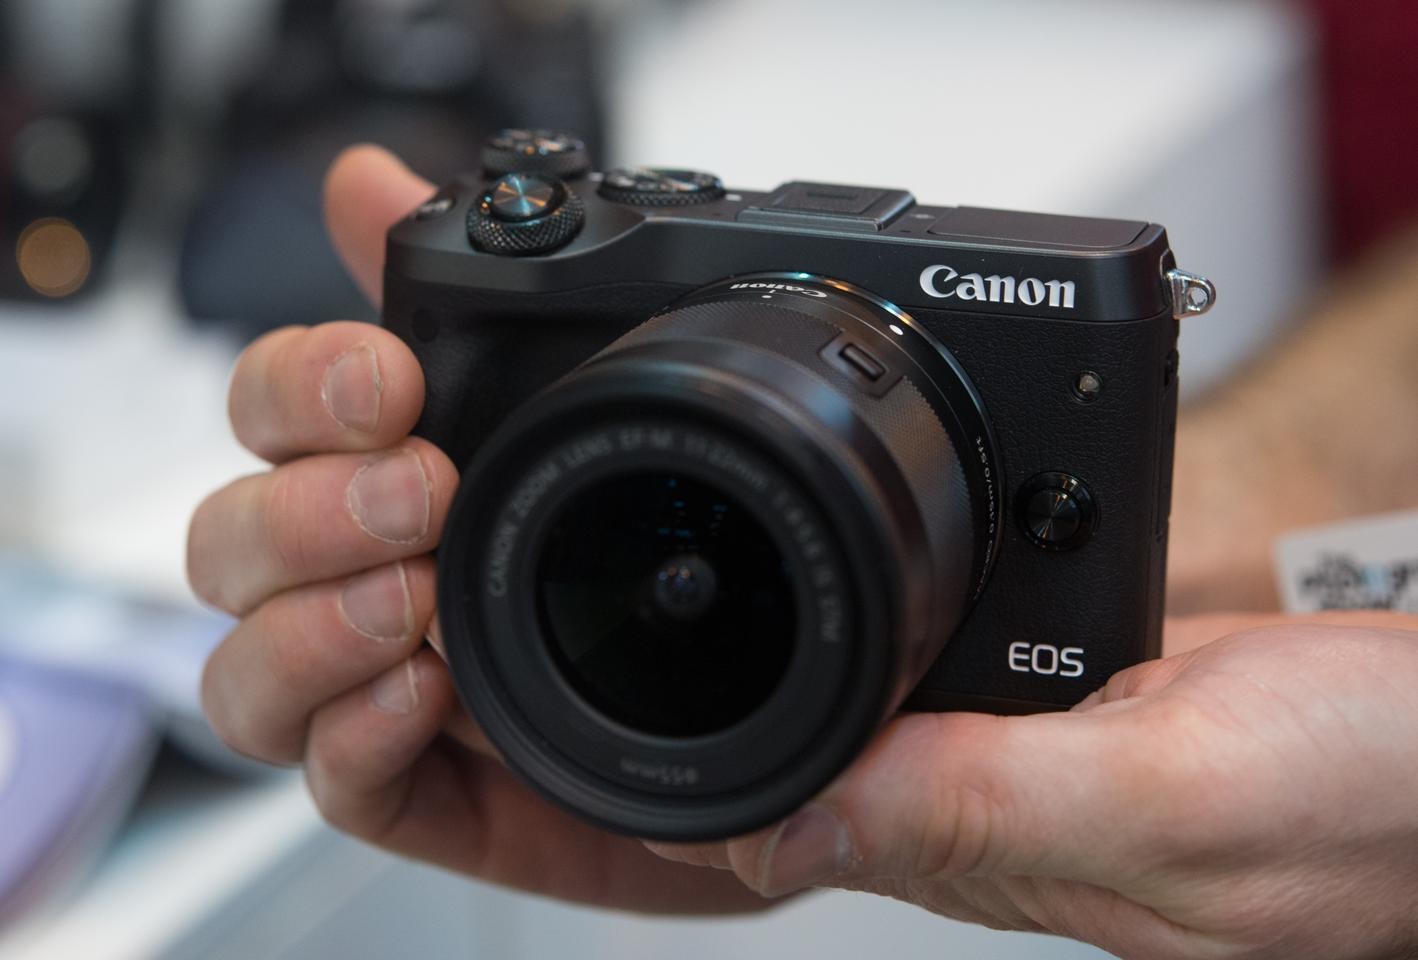 The Canon EOS M6 mirrorless camera features a 24-megapixel APS-C sensor